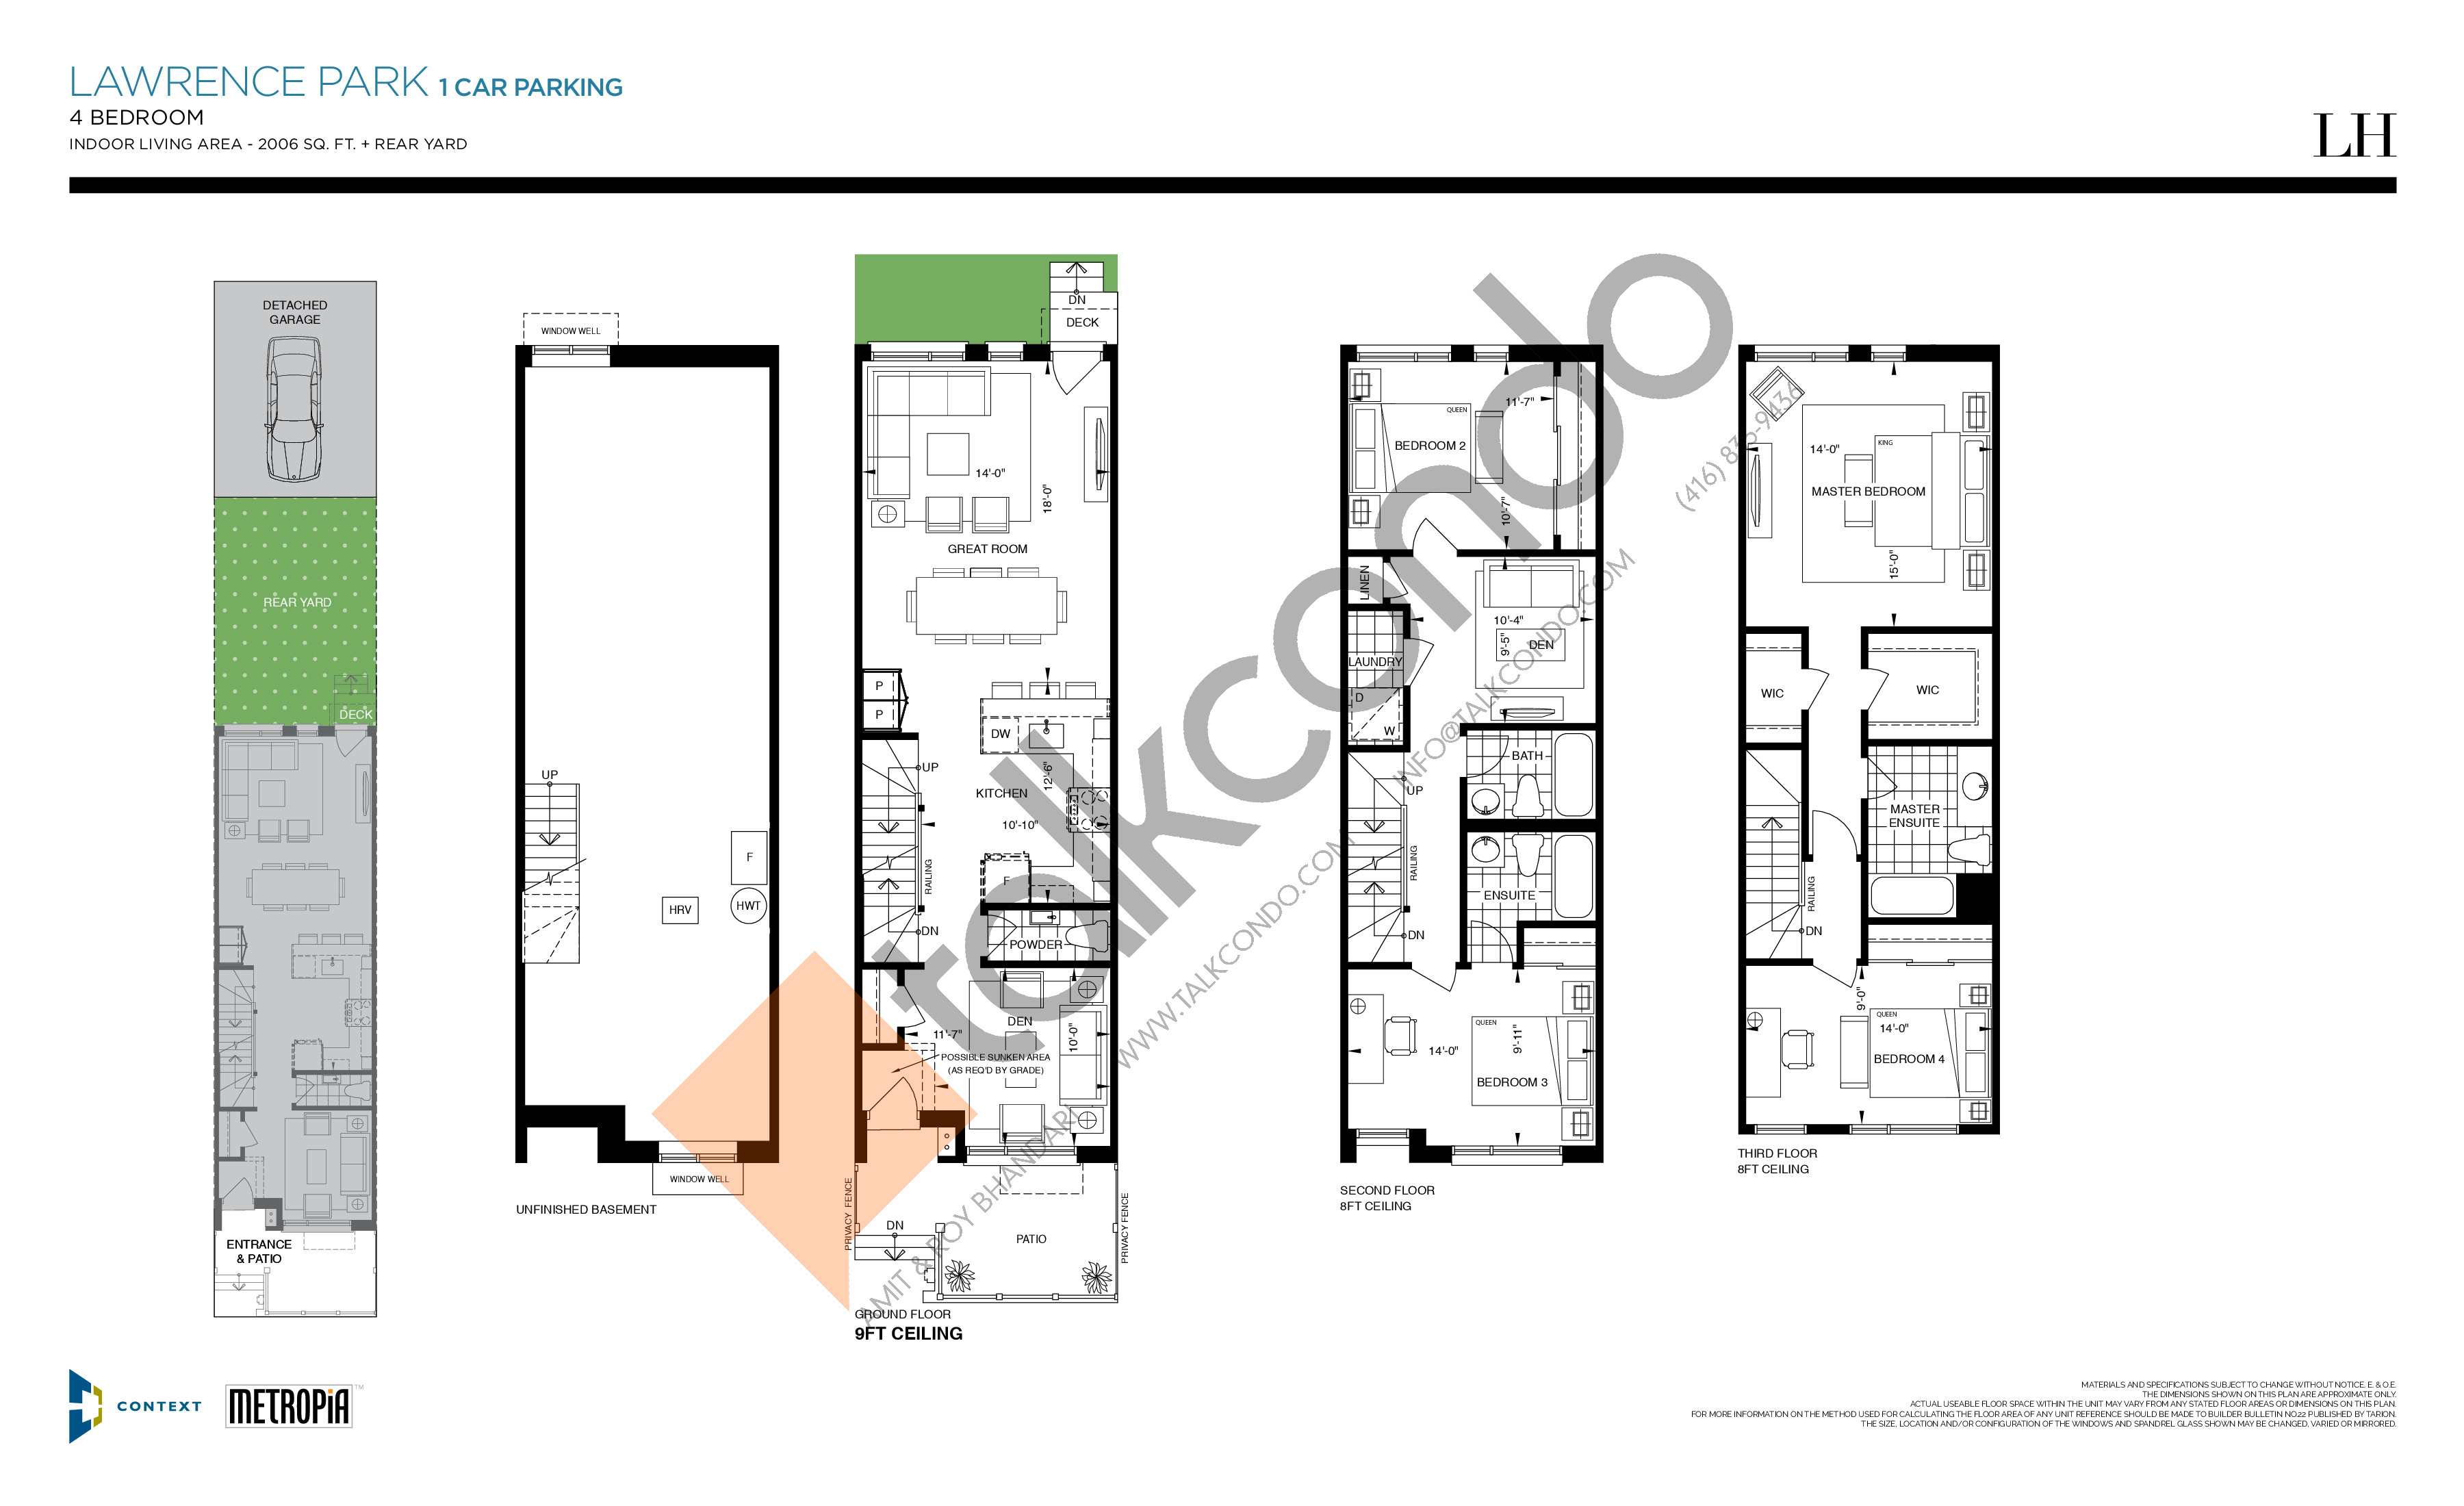 Lawrence Park (1 Car Parking) Floor Plan at The New Lawrence Heights Phase 2 Condos - 2006 sq.ft